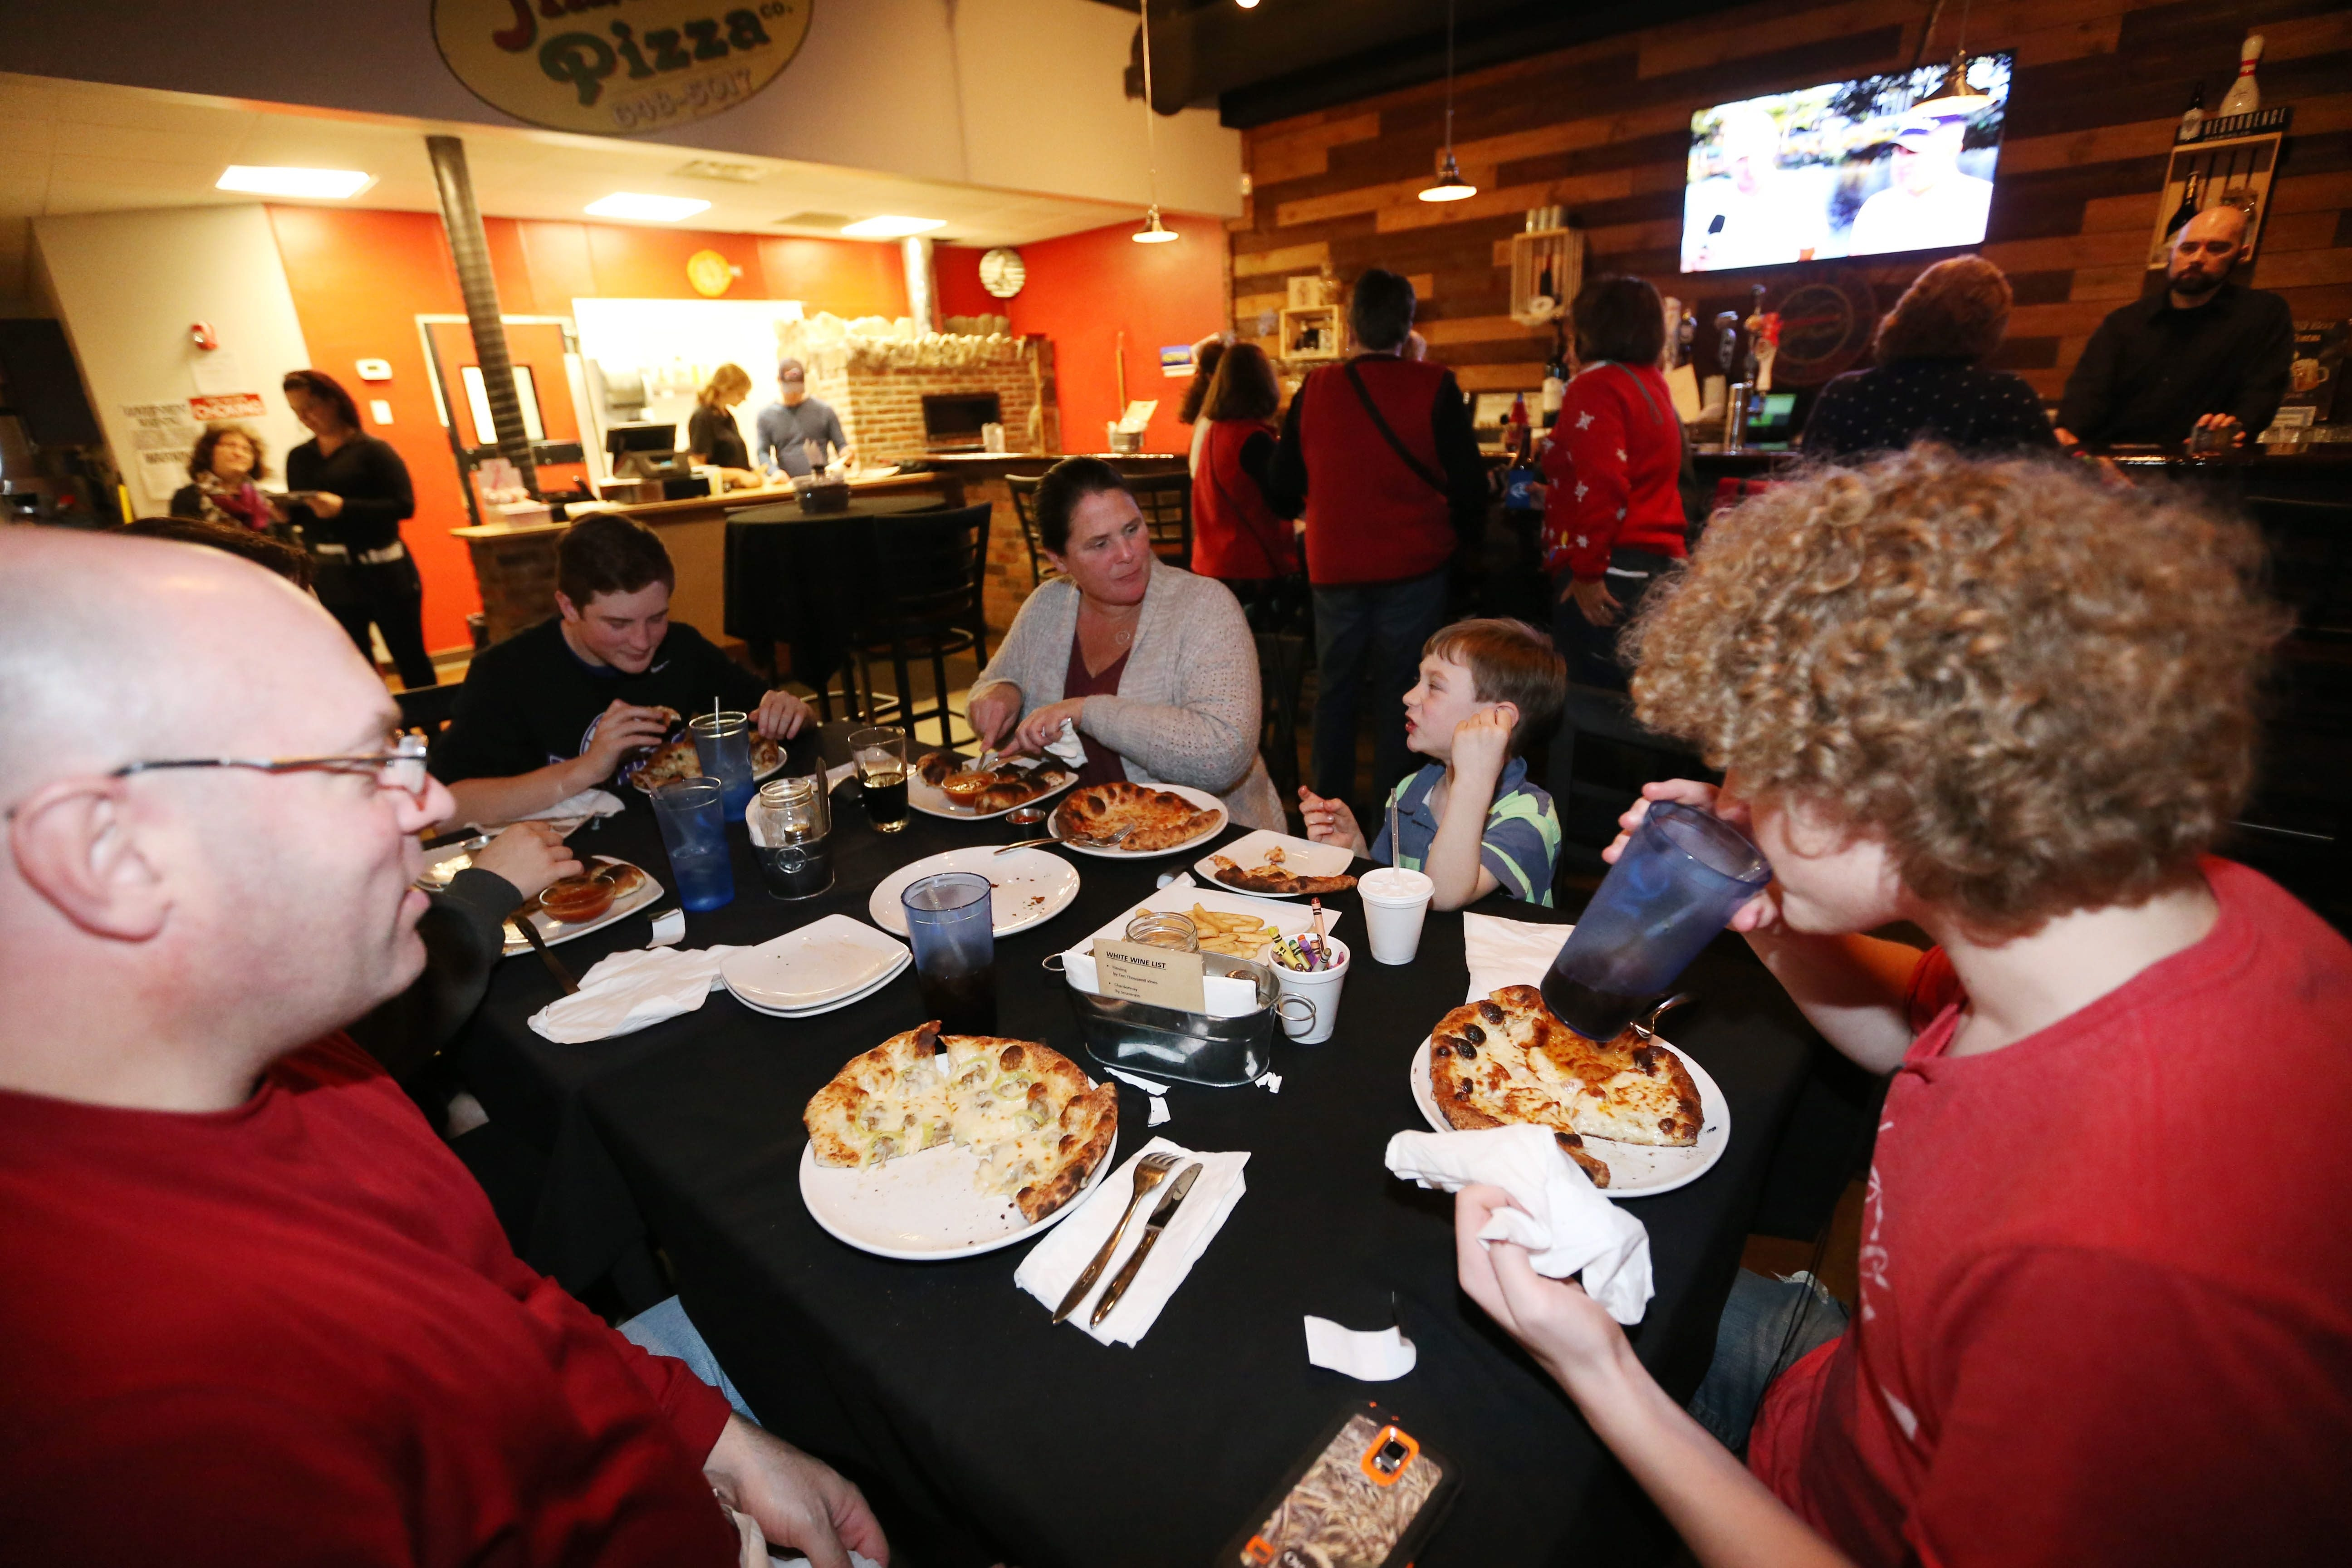 The Miller family of Hamburg has dinner at Butera's. See a photo gallery at buffalonews.com